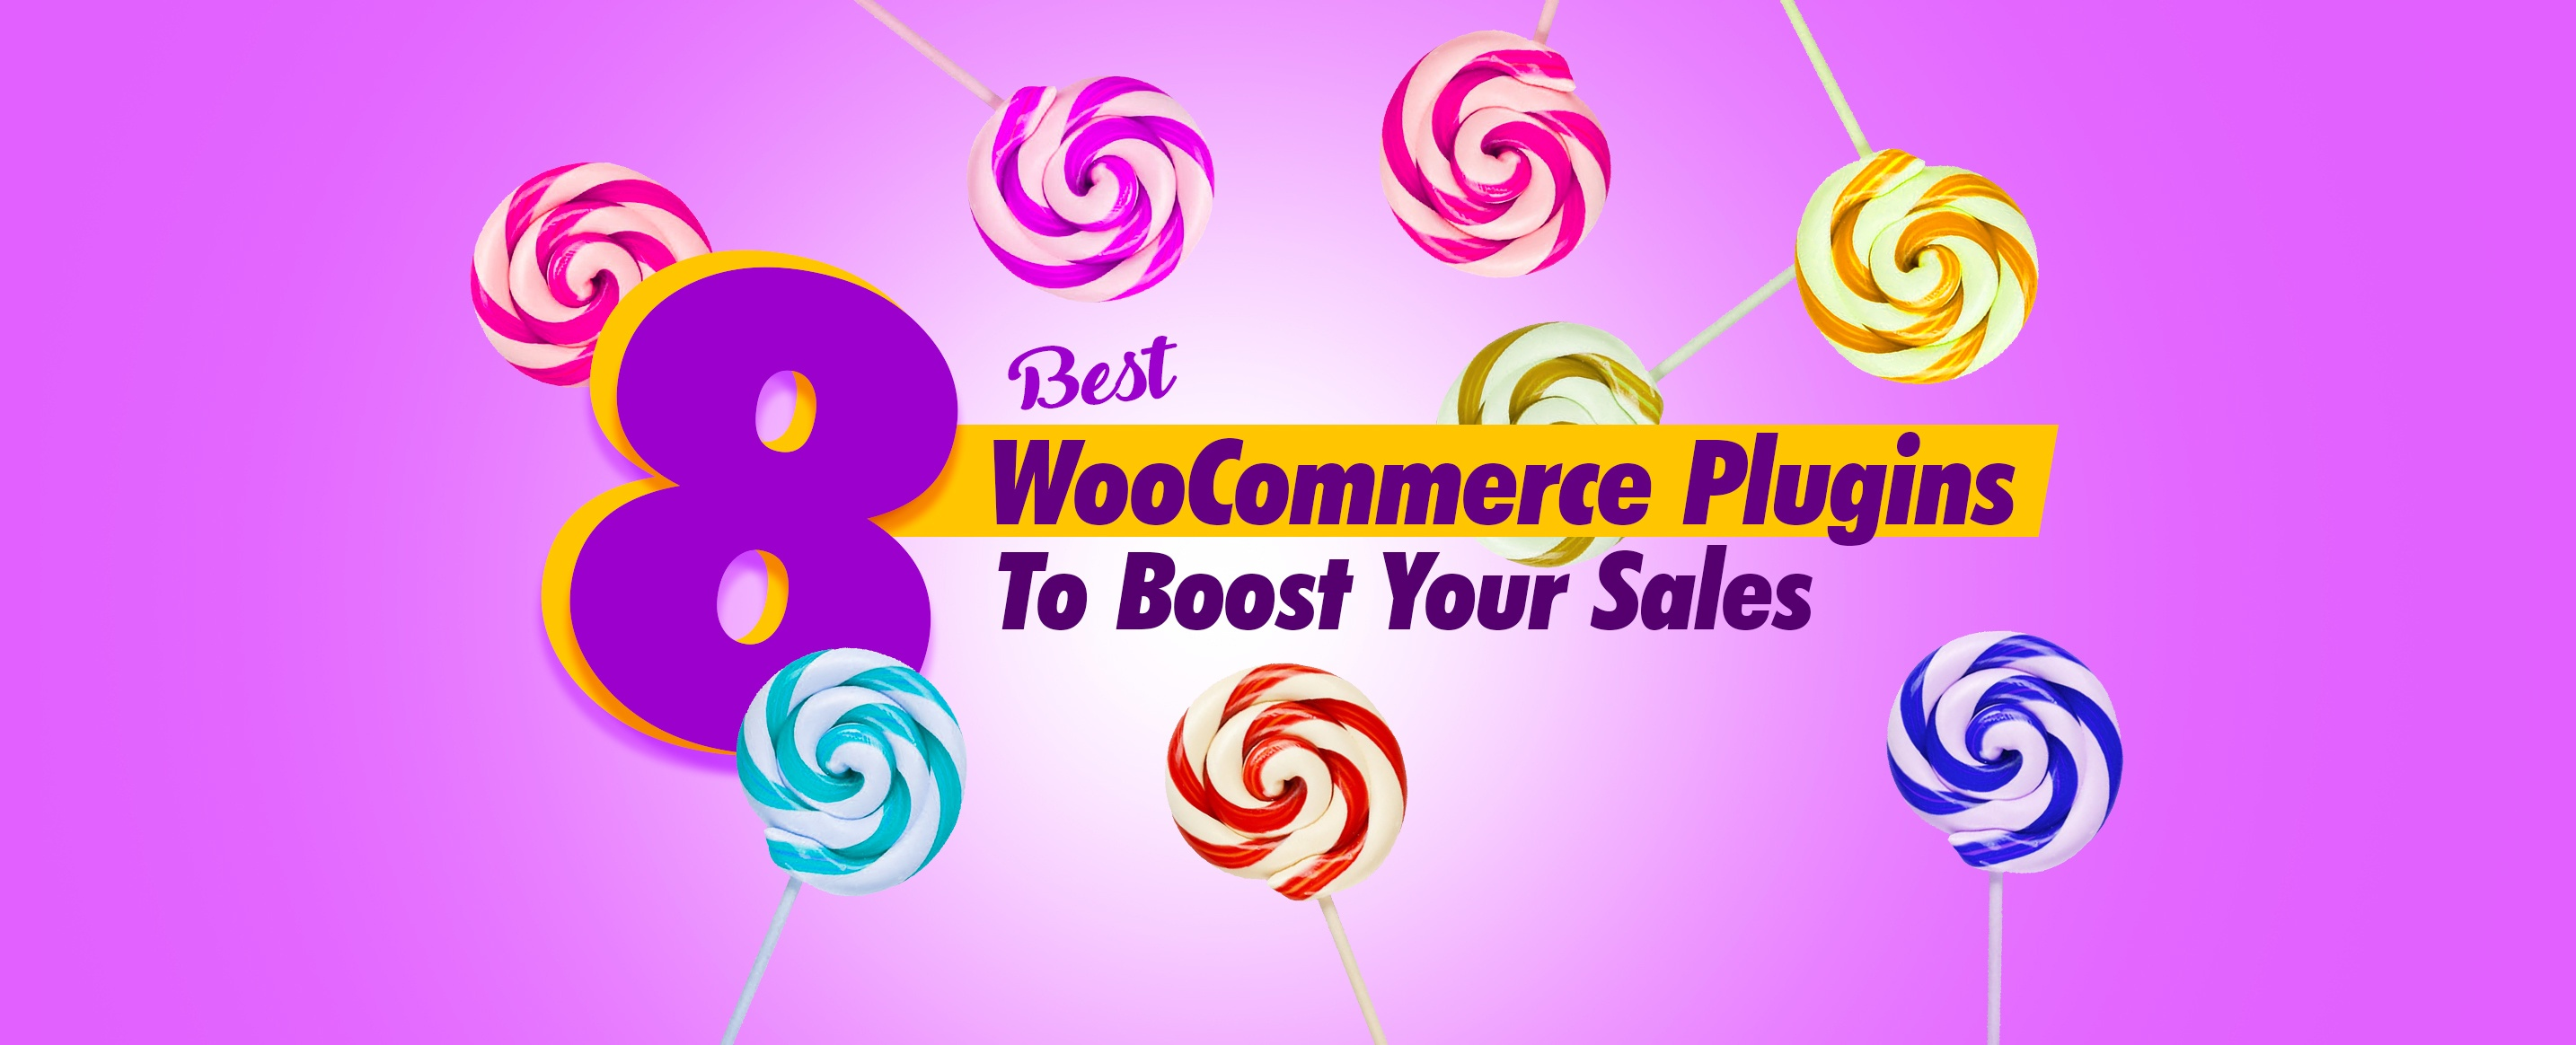 8-Best-WooCommerce-Plugins-To-Boost-Your-Sales